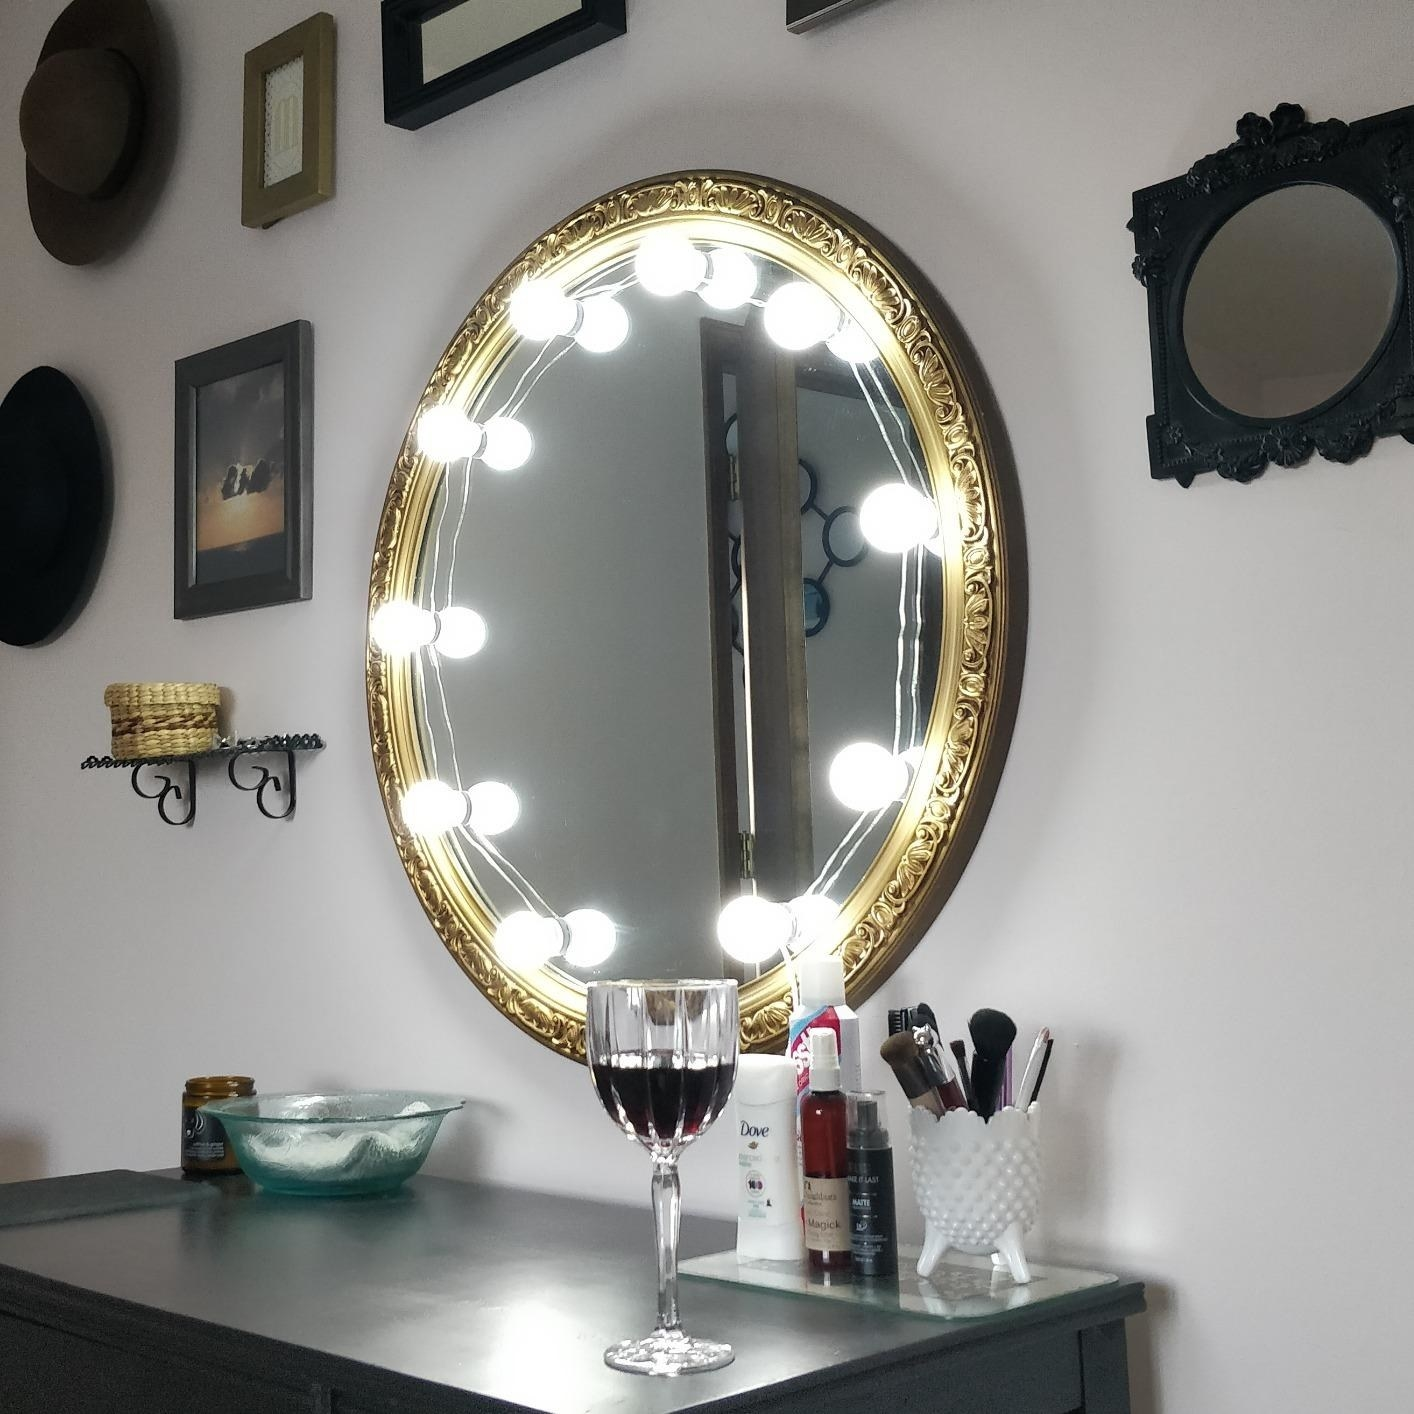 A reviewer's round mirror with the strand of globe lights placed around it